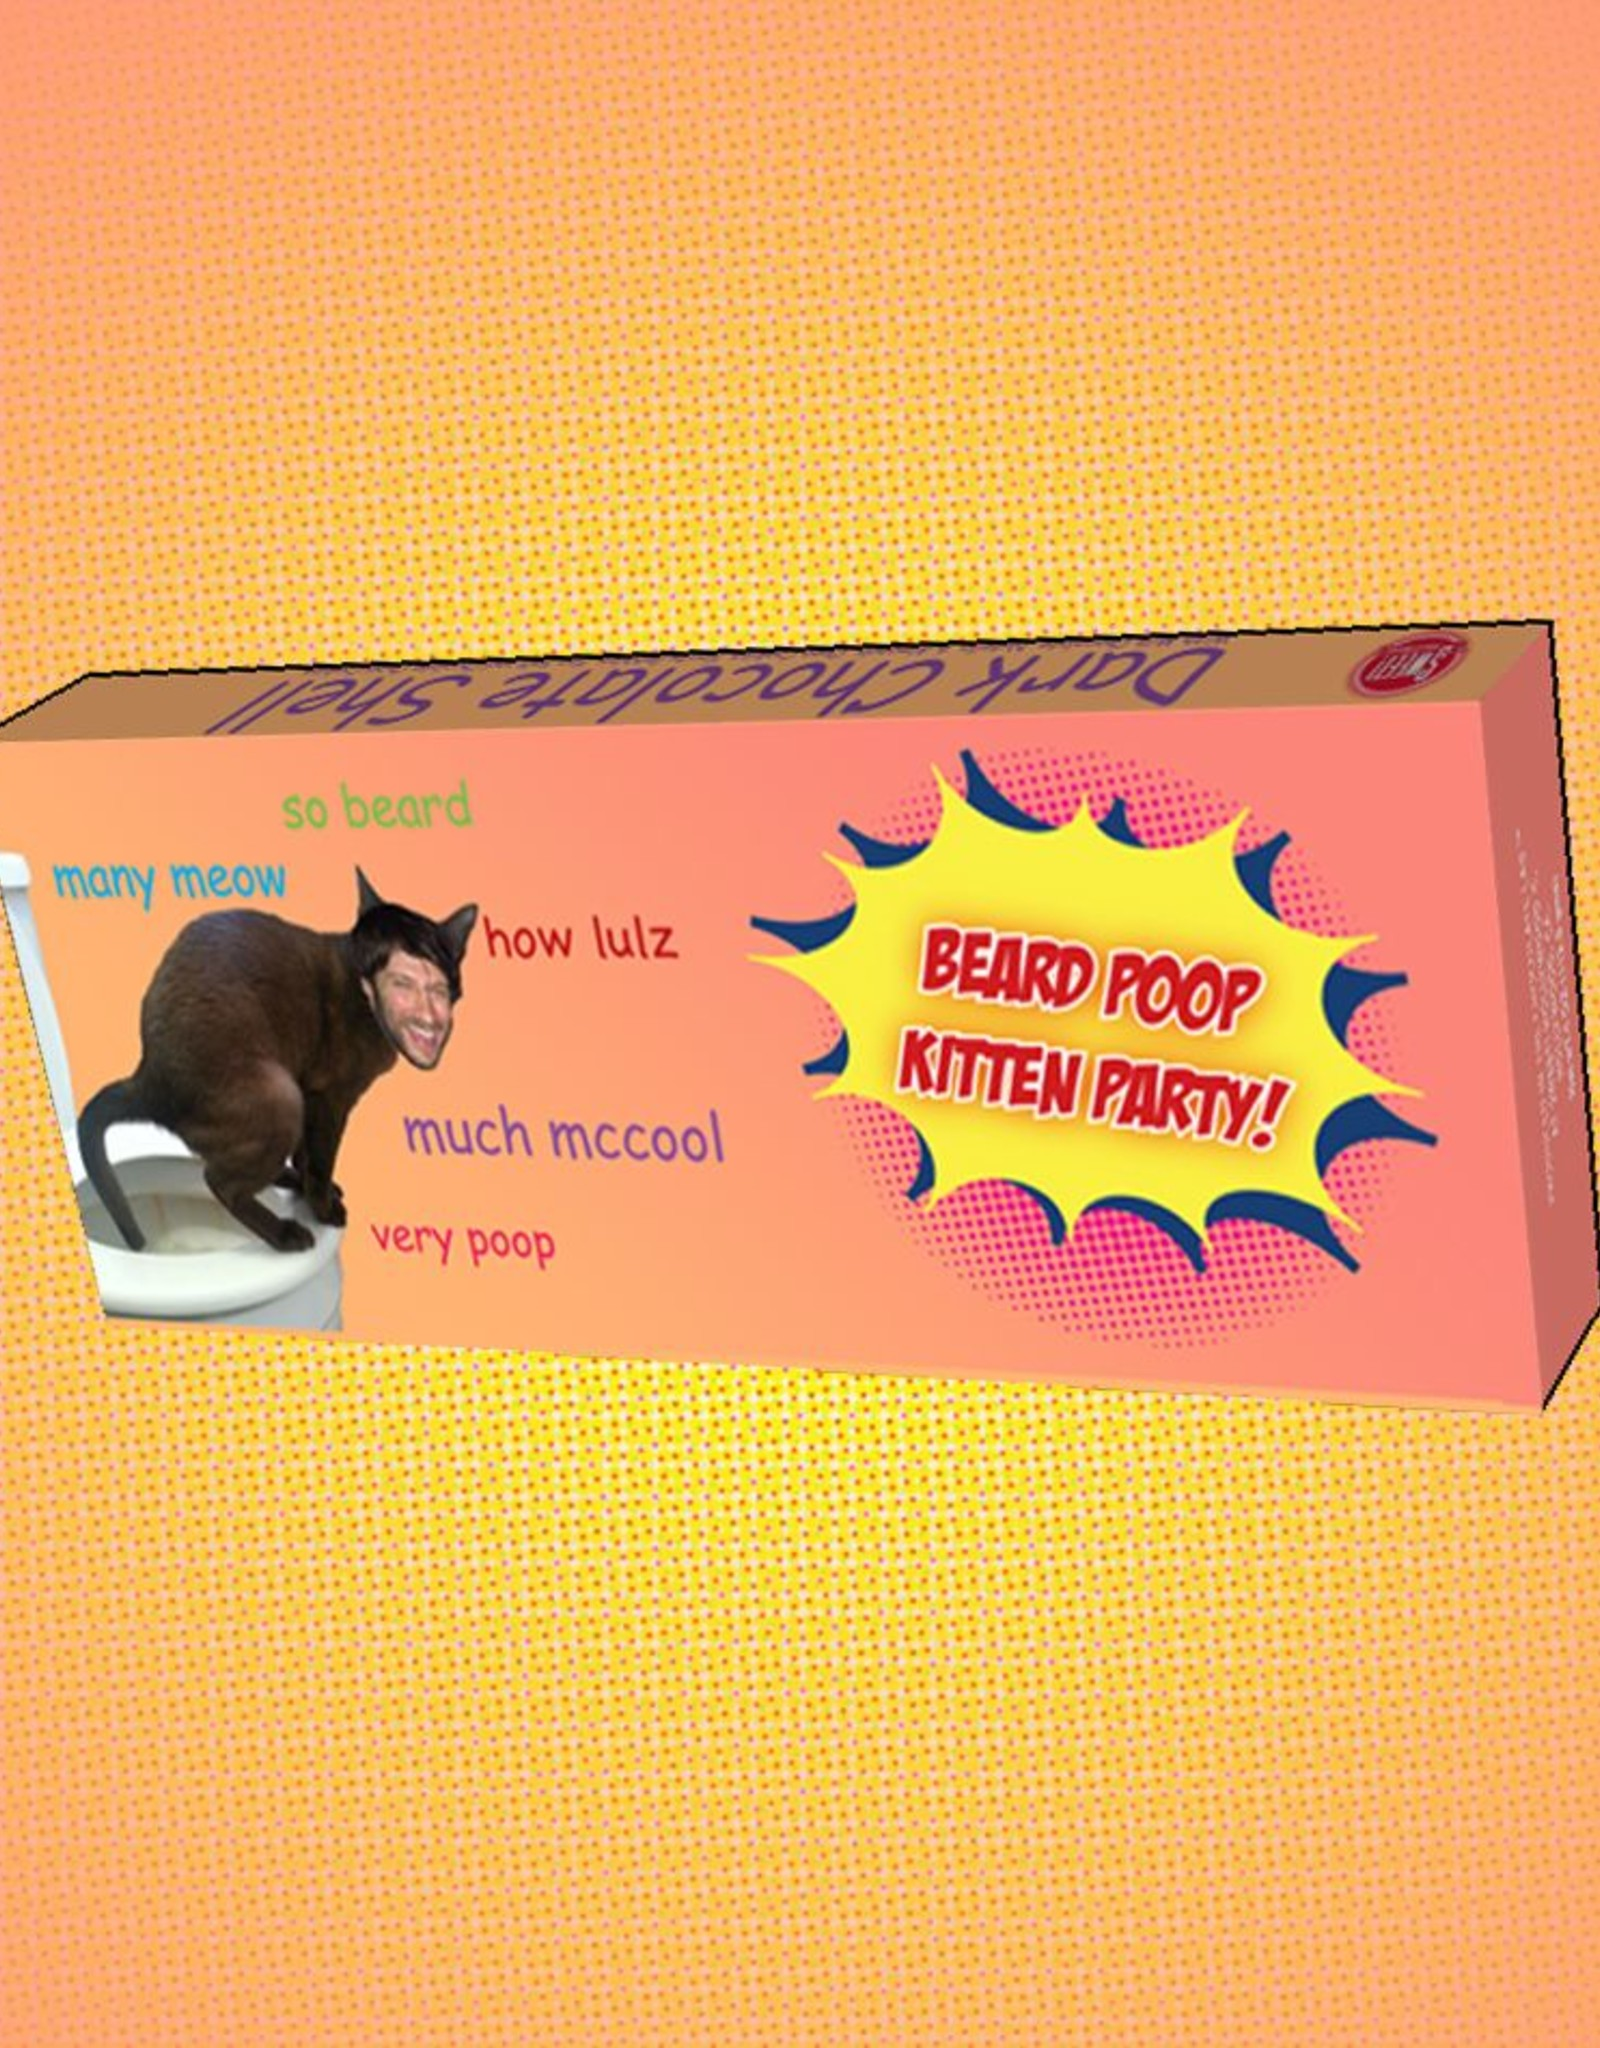 Todd McCool Beard Poop Kitten Party Bar